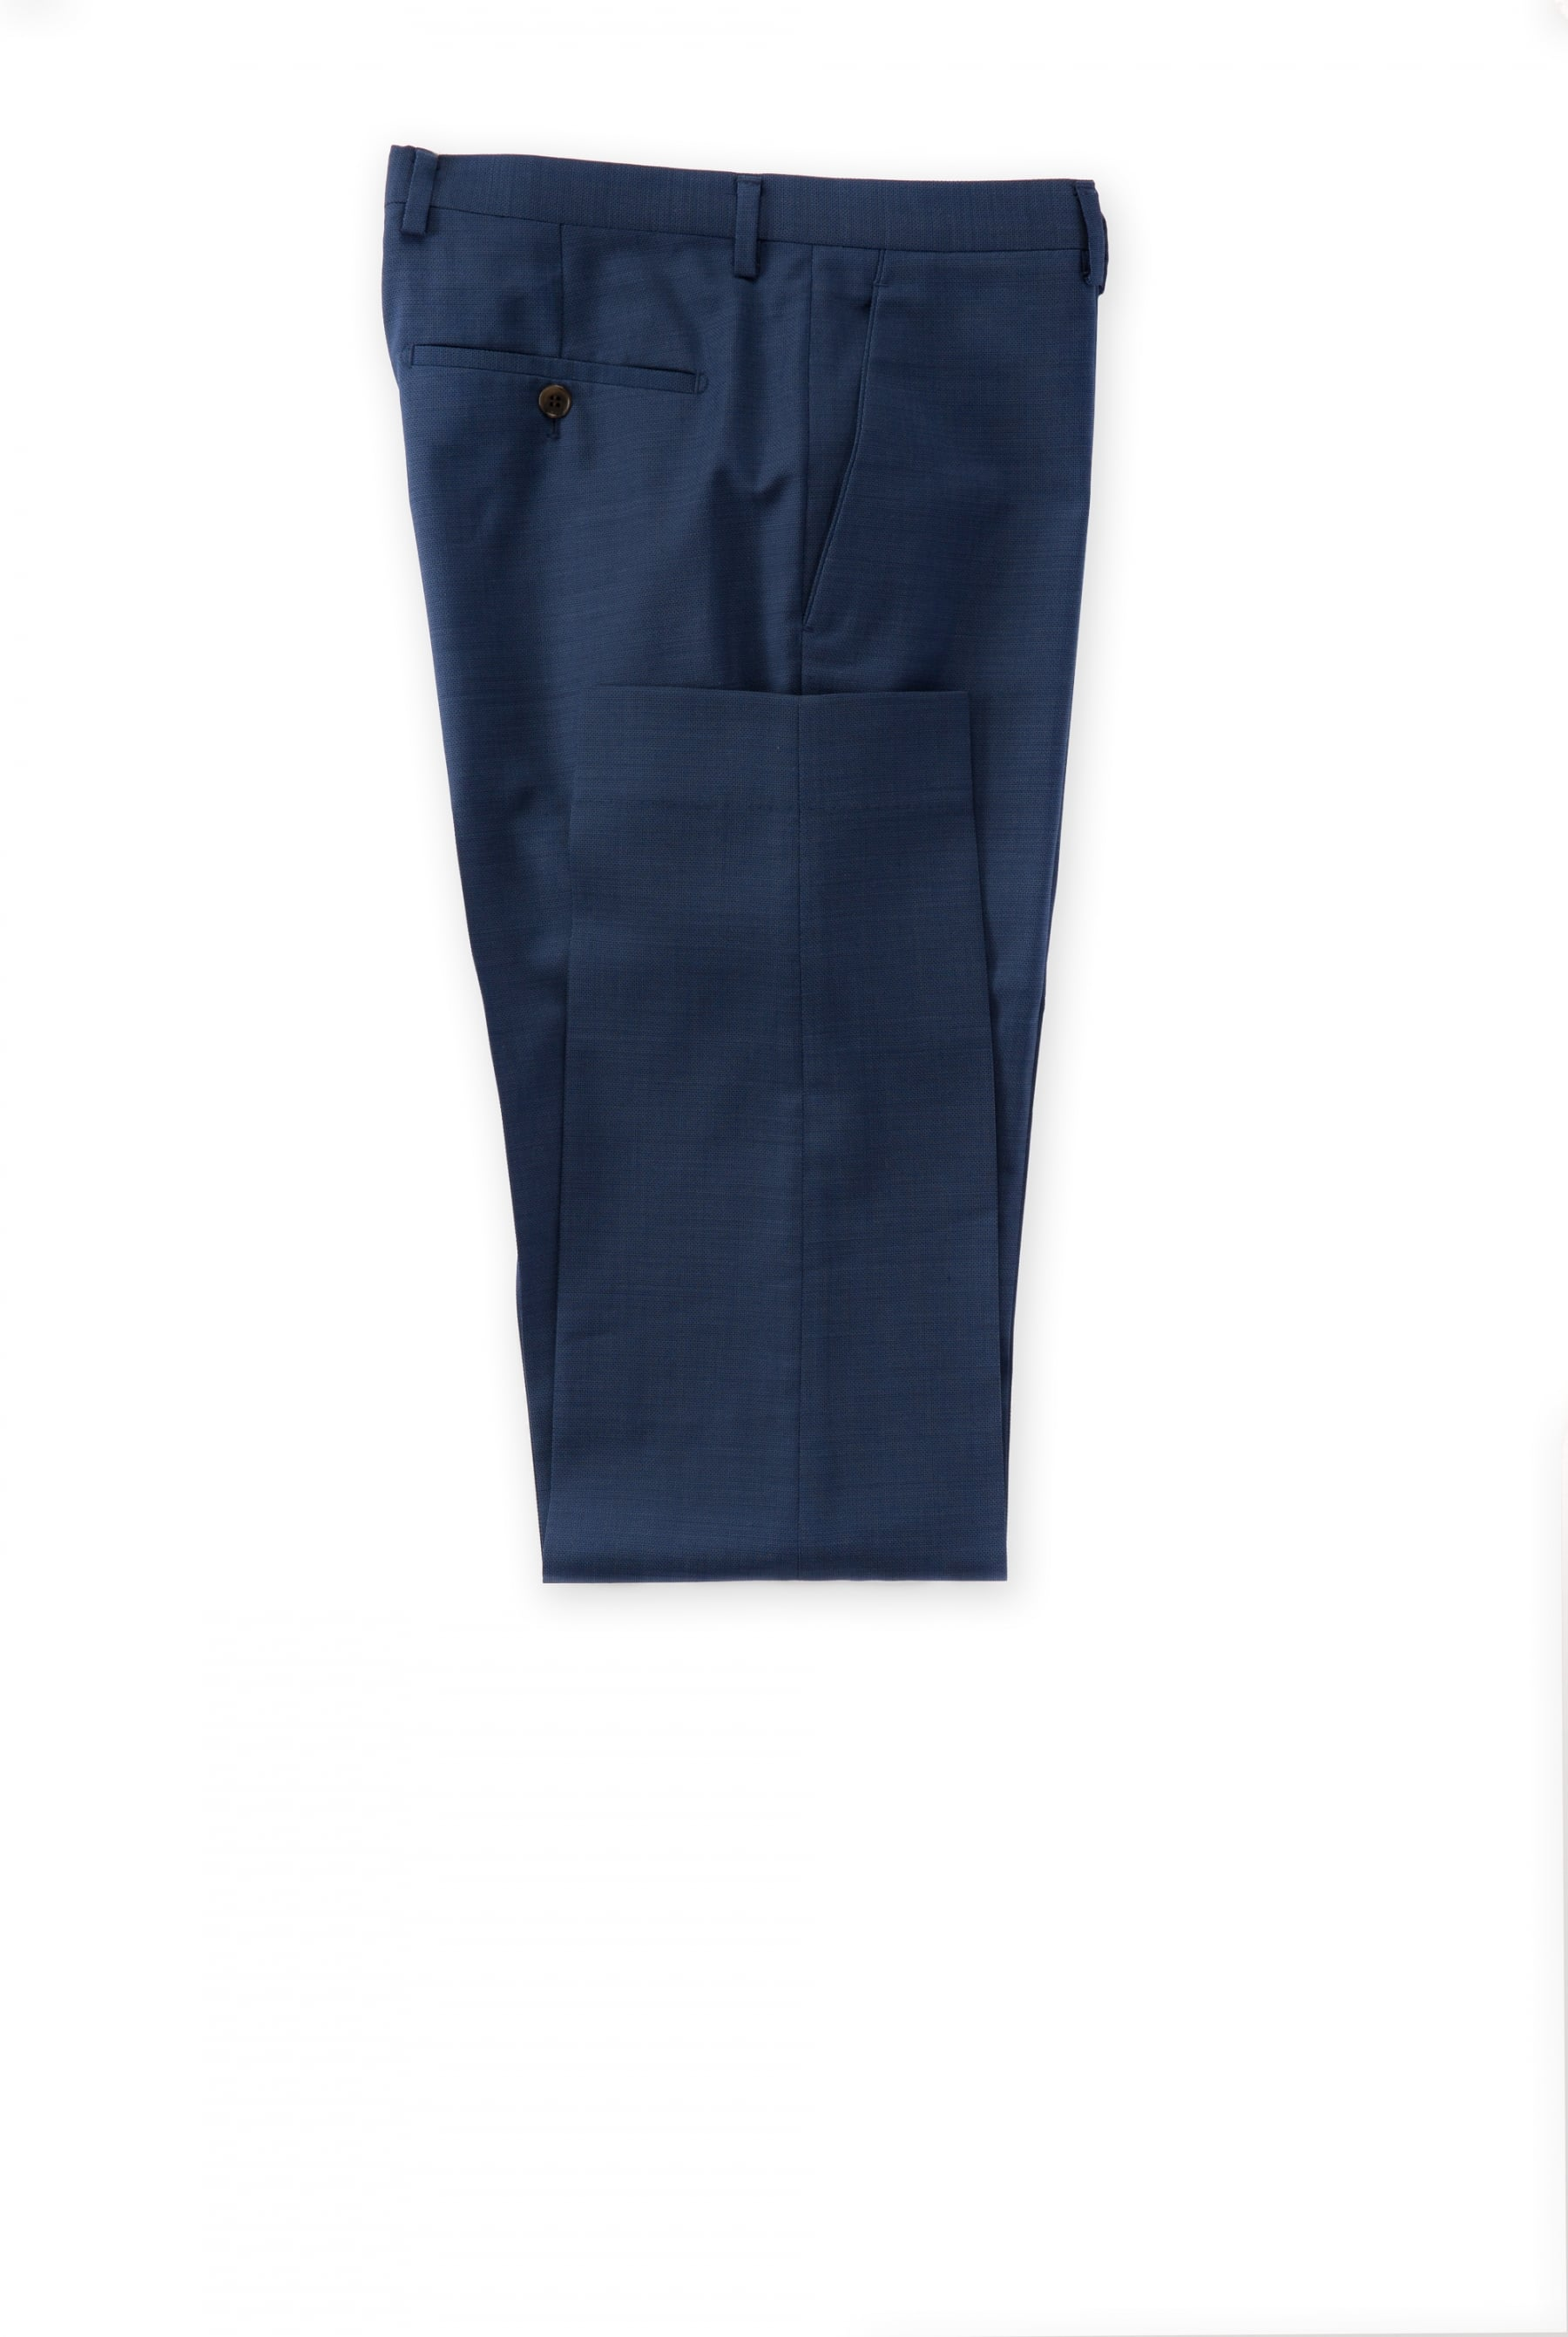 country road intense blue pant